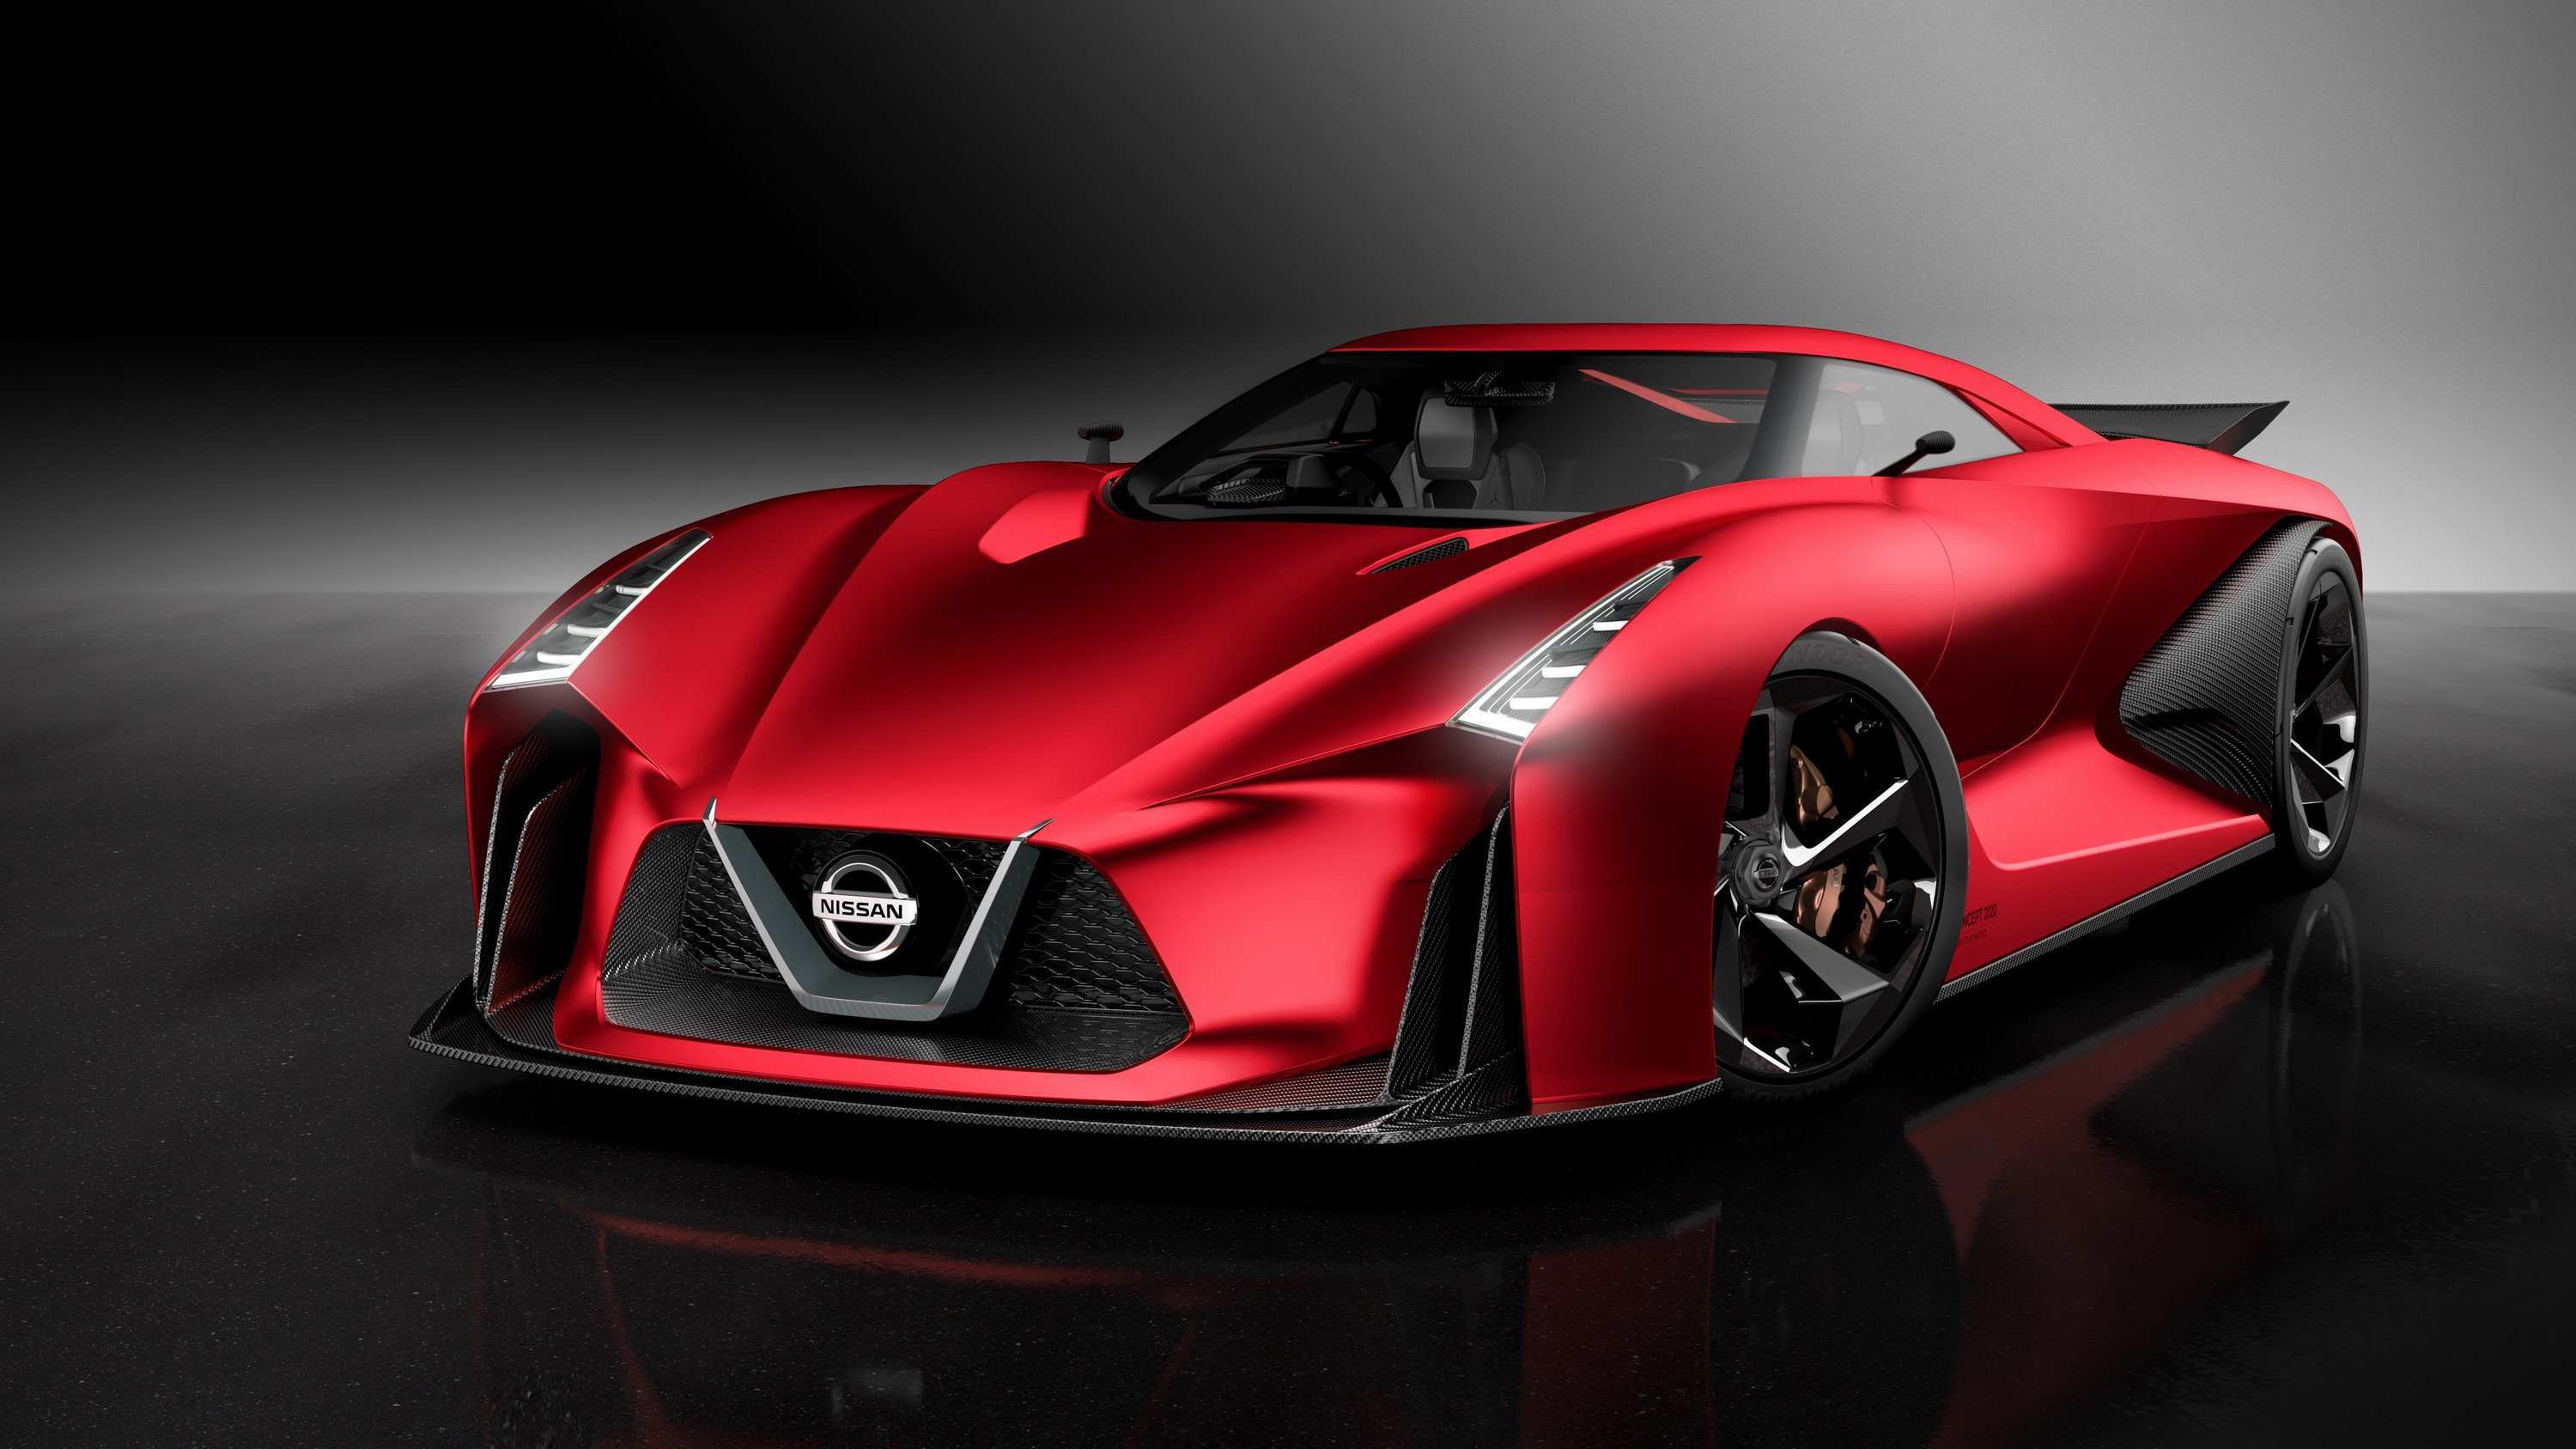 88 All New Nissan Gtr R36 Concept 2020 Redesign by Nissan Gtr R36 Concept 2020